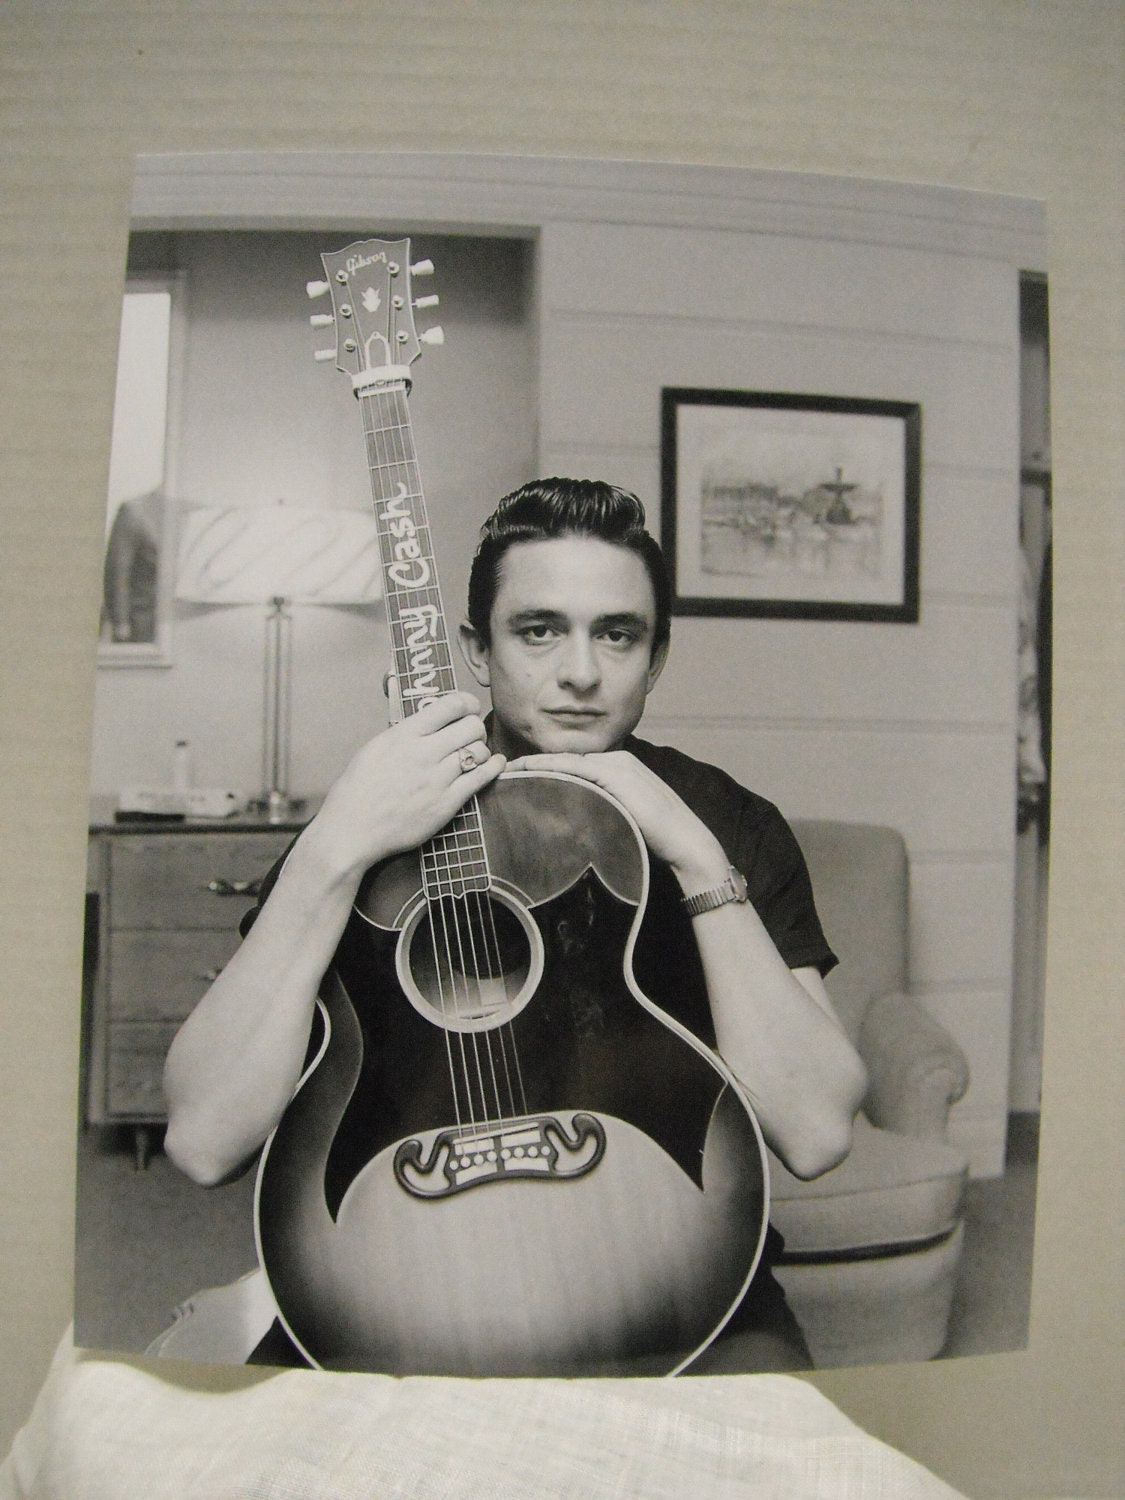 A Very Young Johnny Cash In A 1950 S Photo Reprint By